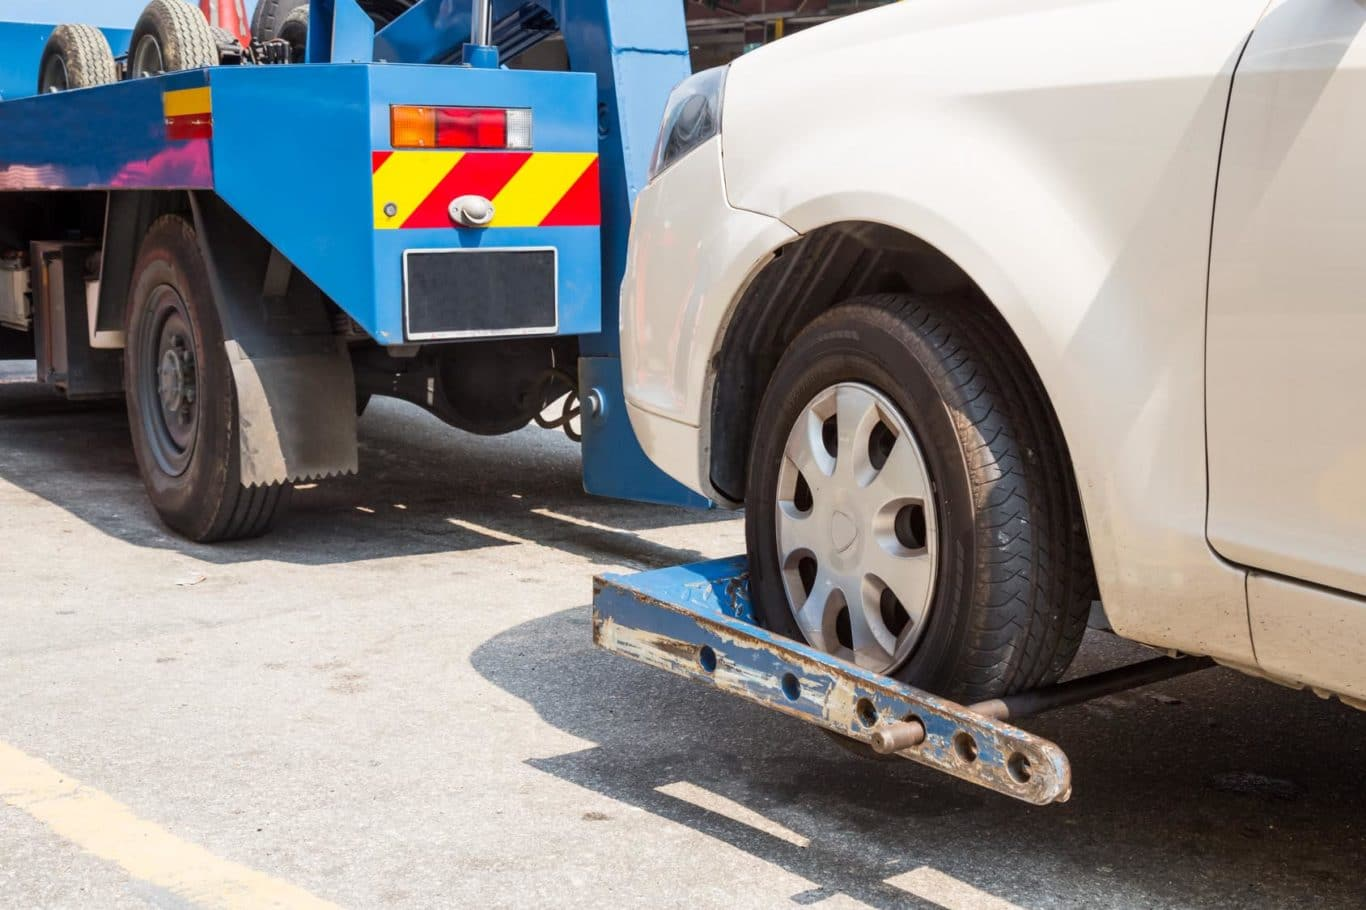 Roundwood expert Car Towing services